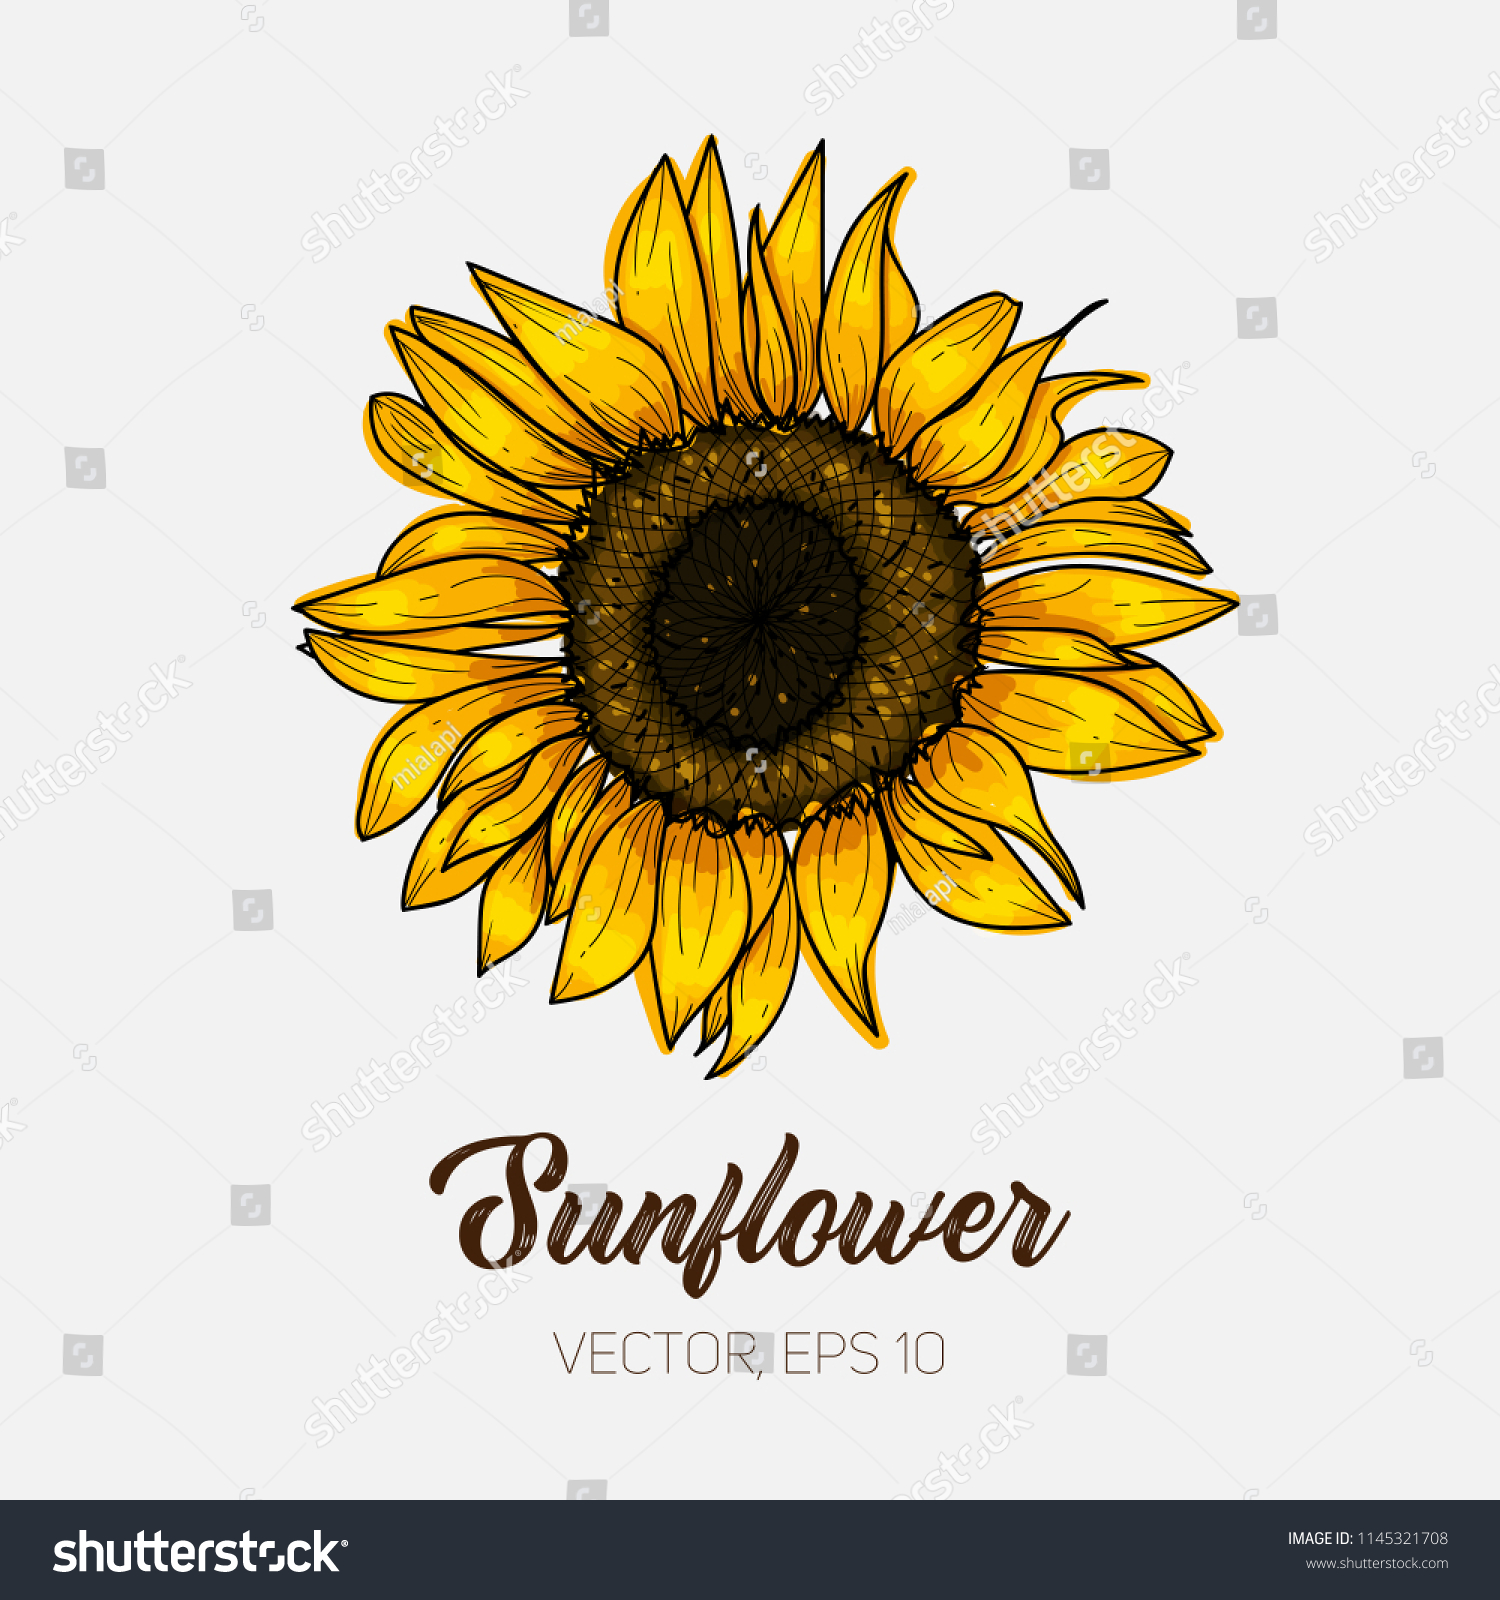 Botanical floral illustration, wild meadow sunflower, isolated on white background, card template, for book, cover, banner. Hand painted flowers. Vector, eps 10